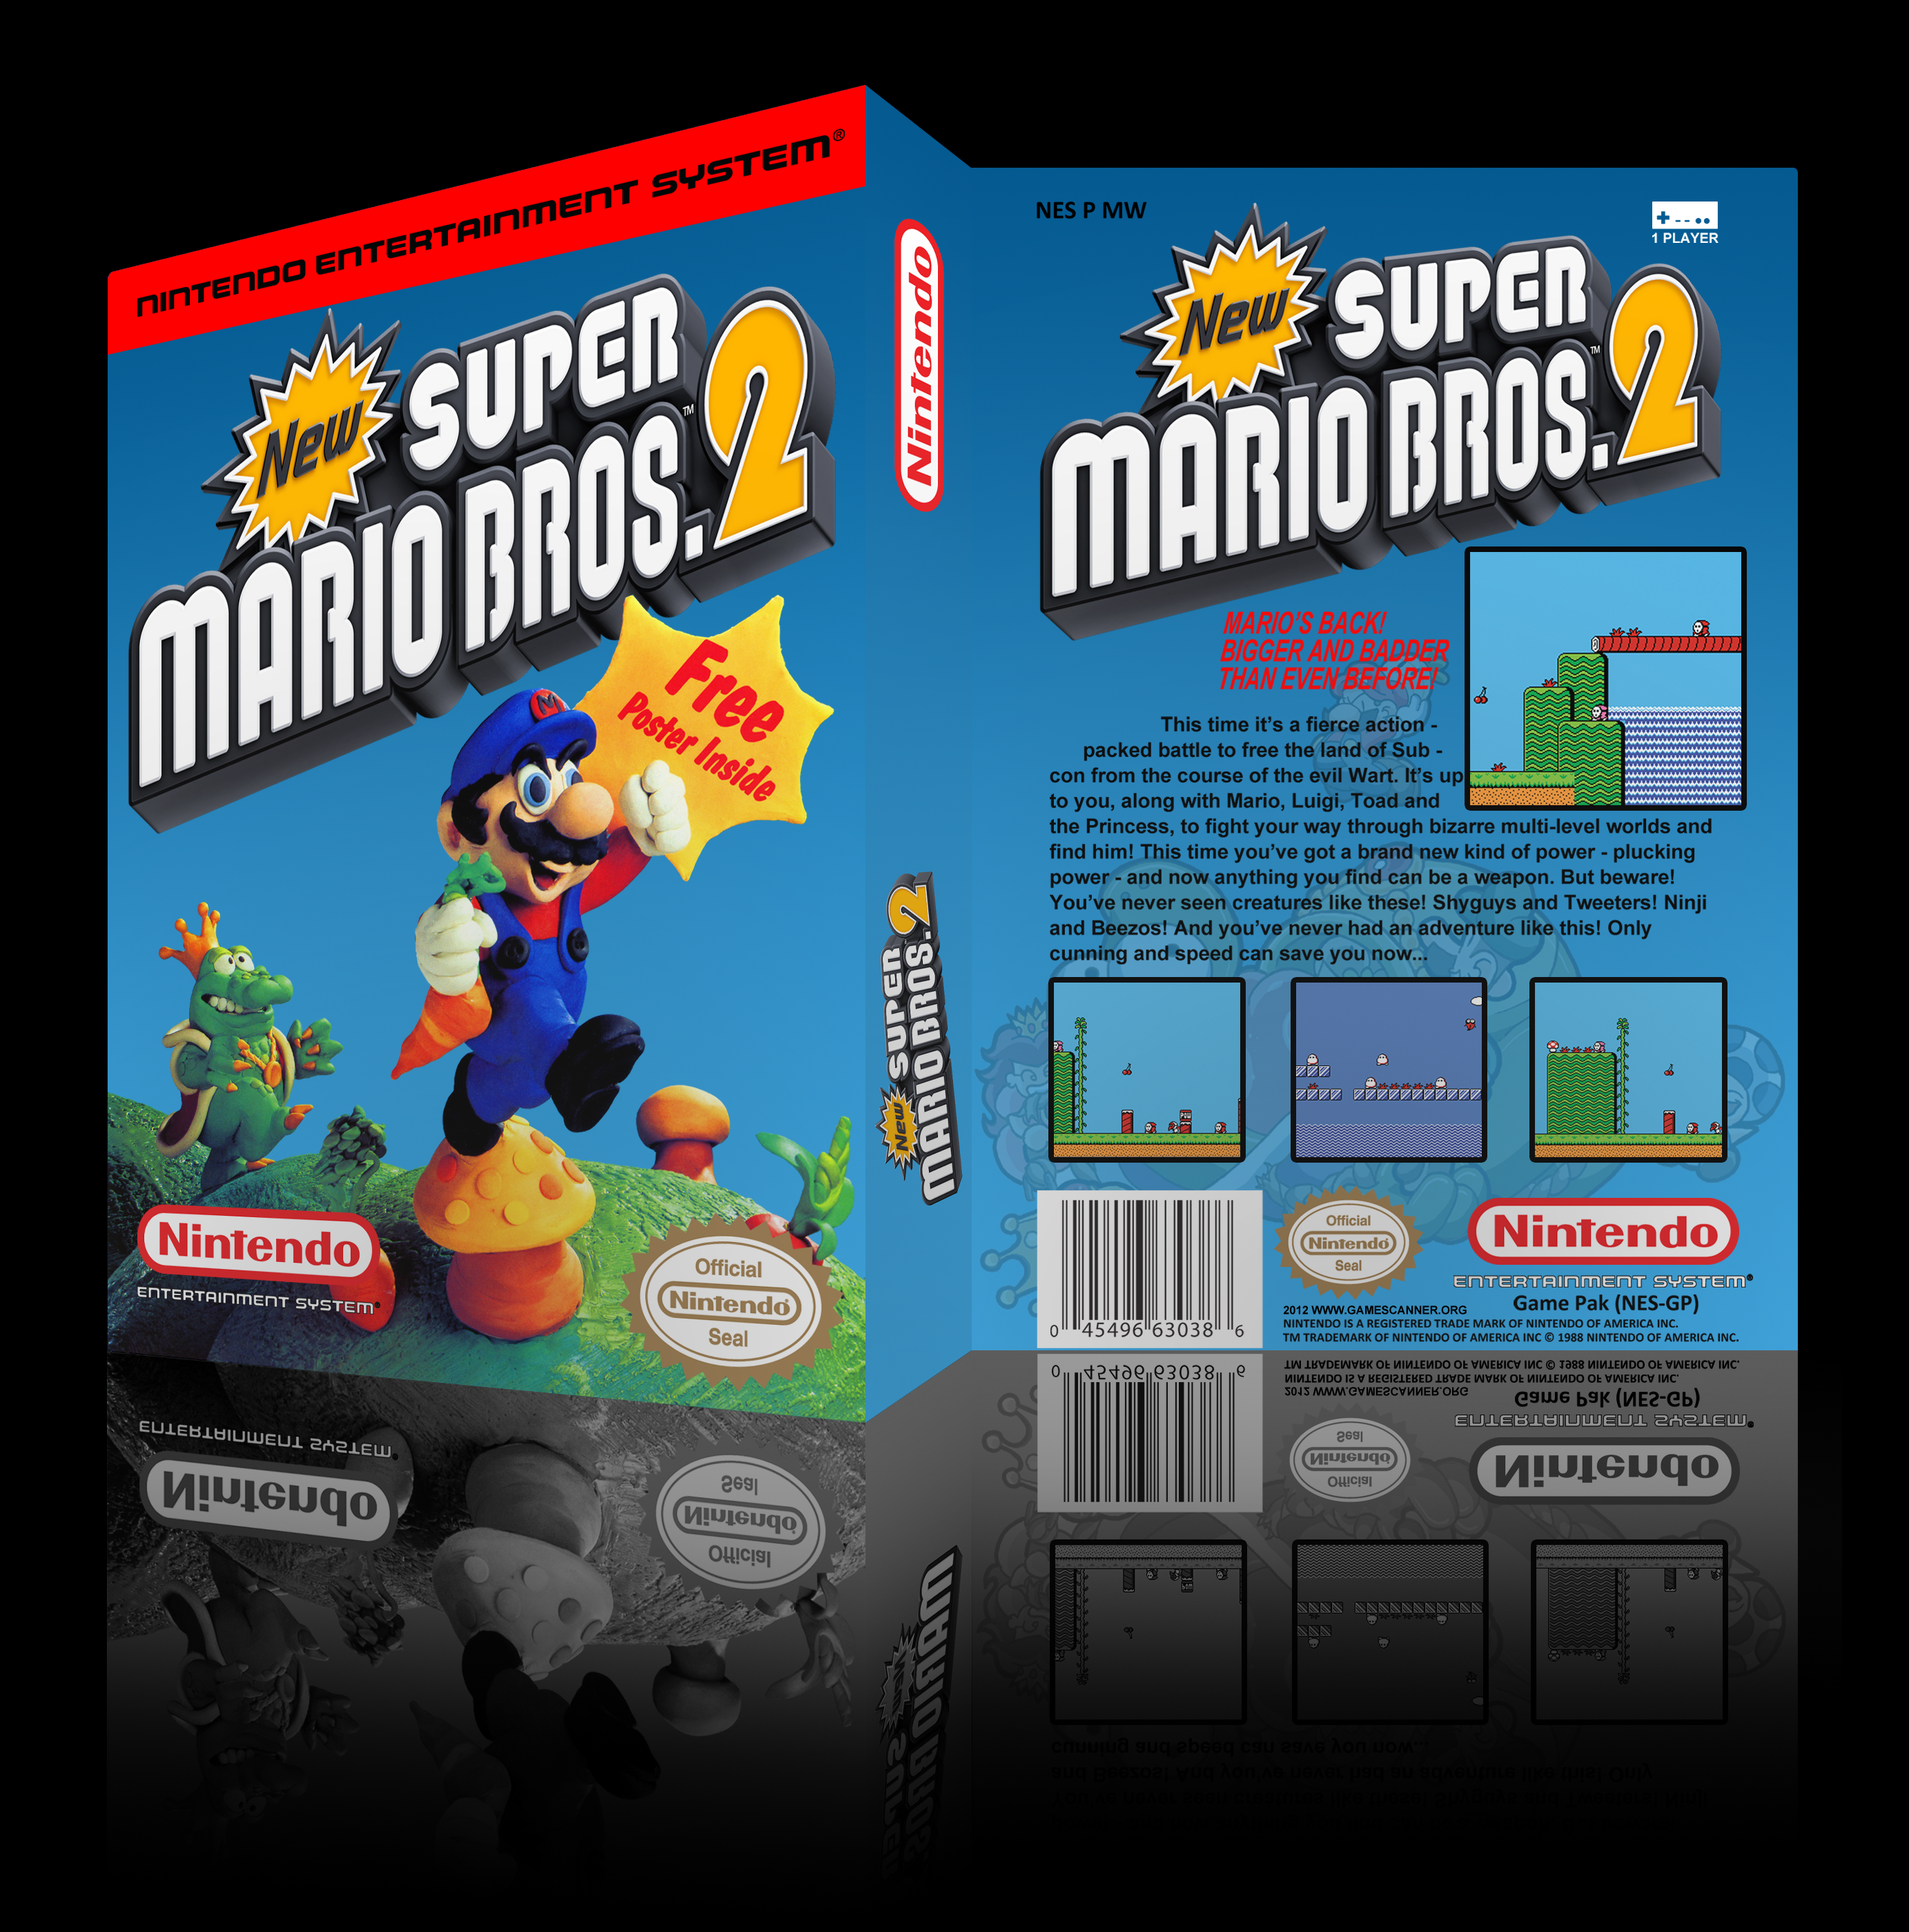 super mario bros 2 nes box art cover by. Black Bedroom Furniture Sets. Home Design Ideas